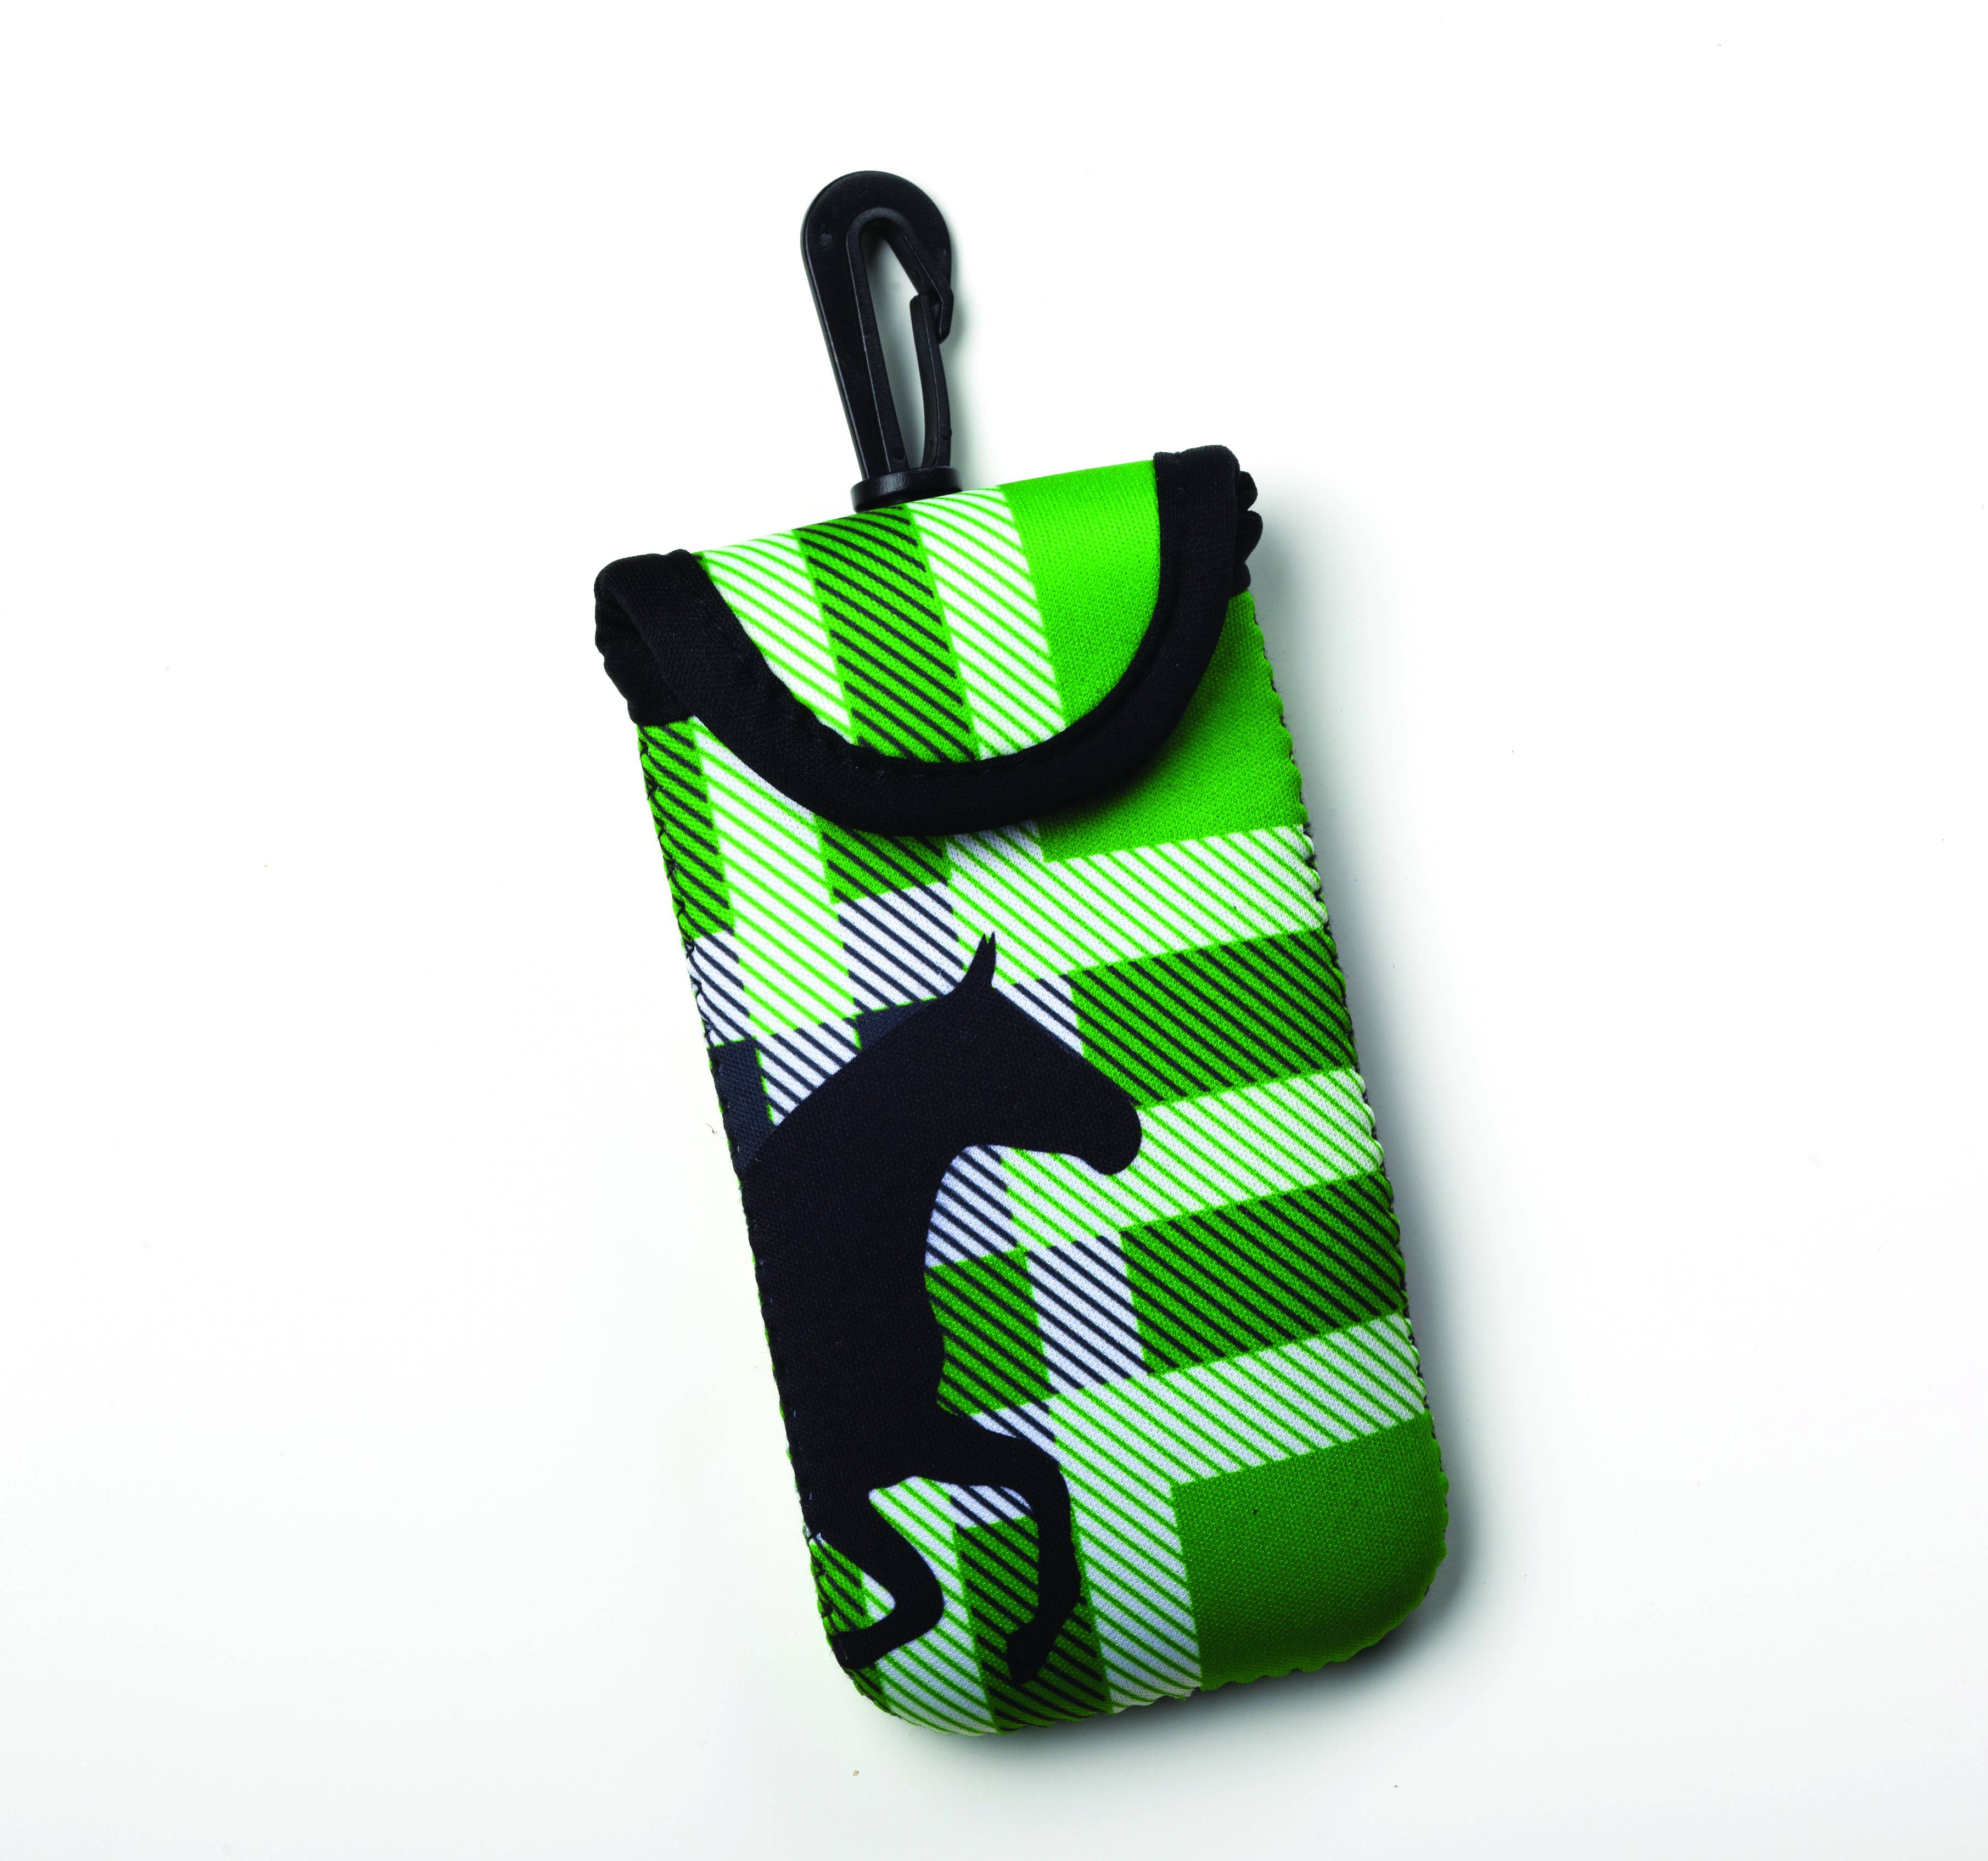 Kelley Tek Trek Neoprene Smartphone Case - Green Plaid Galloping Horse